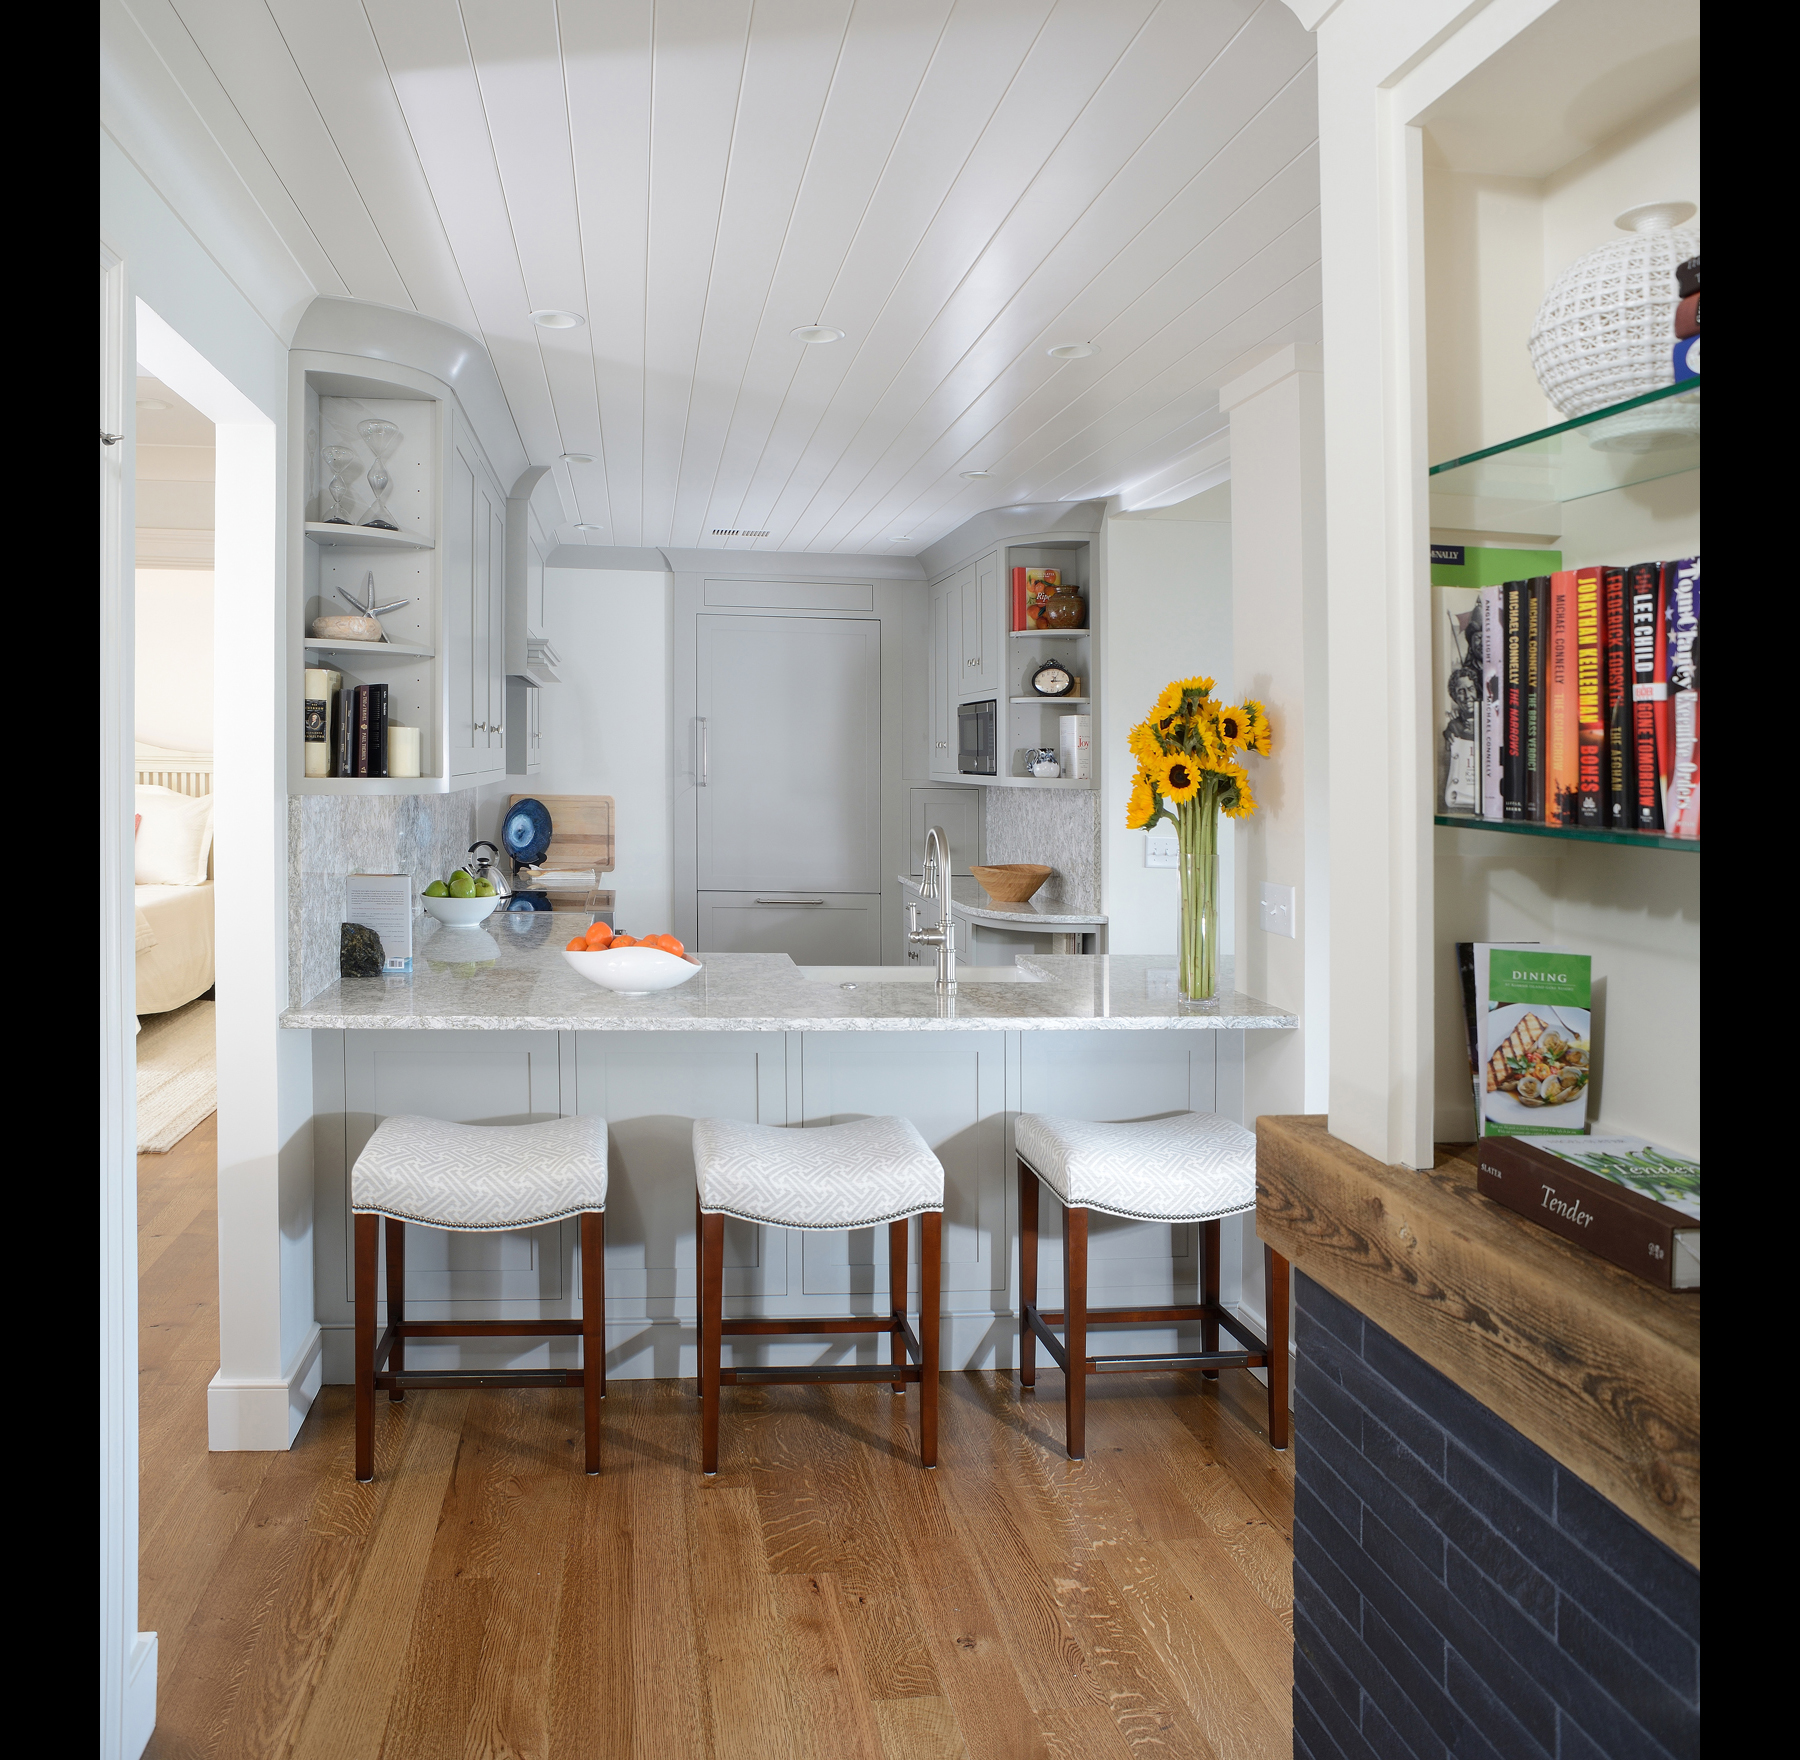 kitchen-from-door-mod.jpg